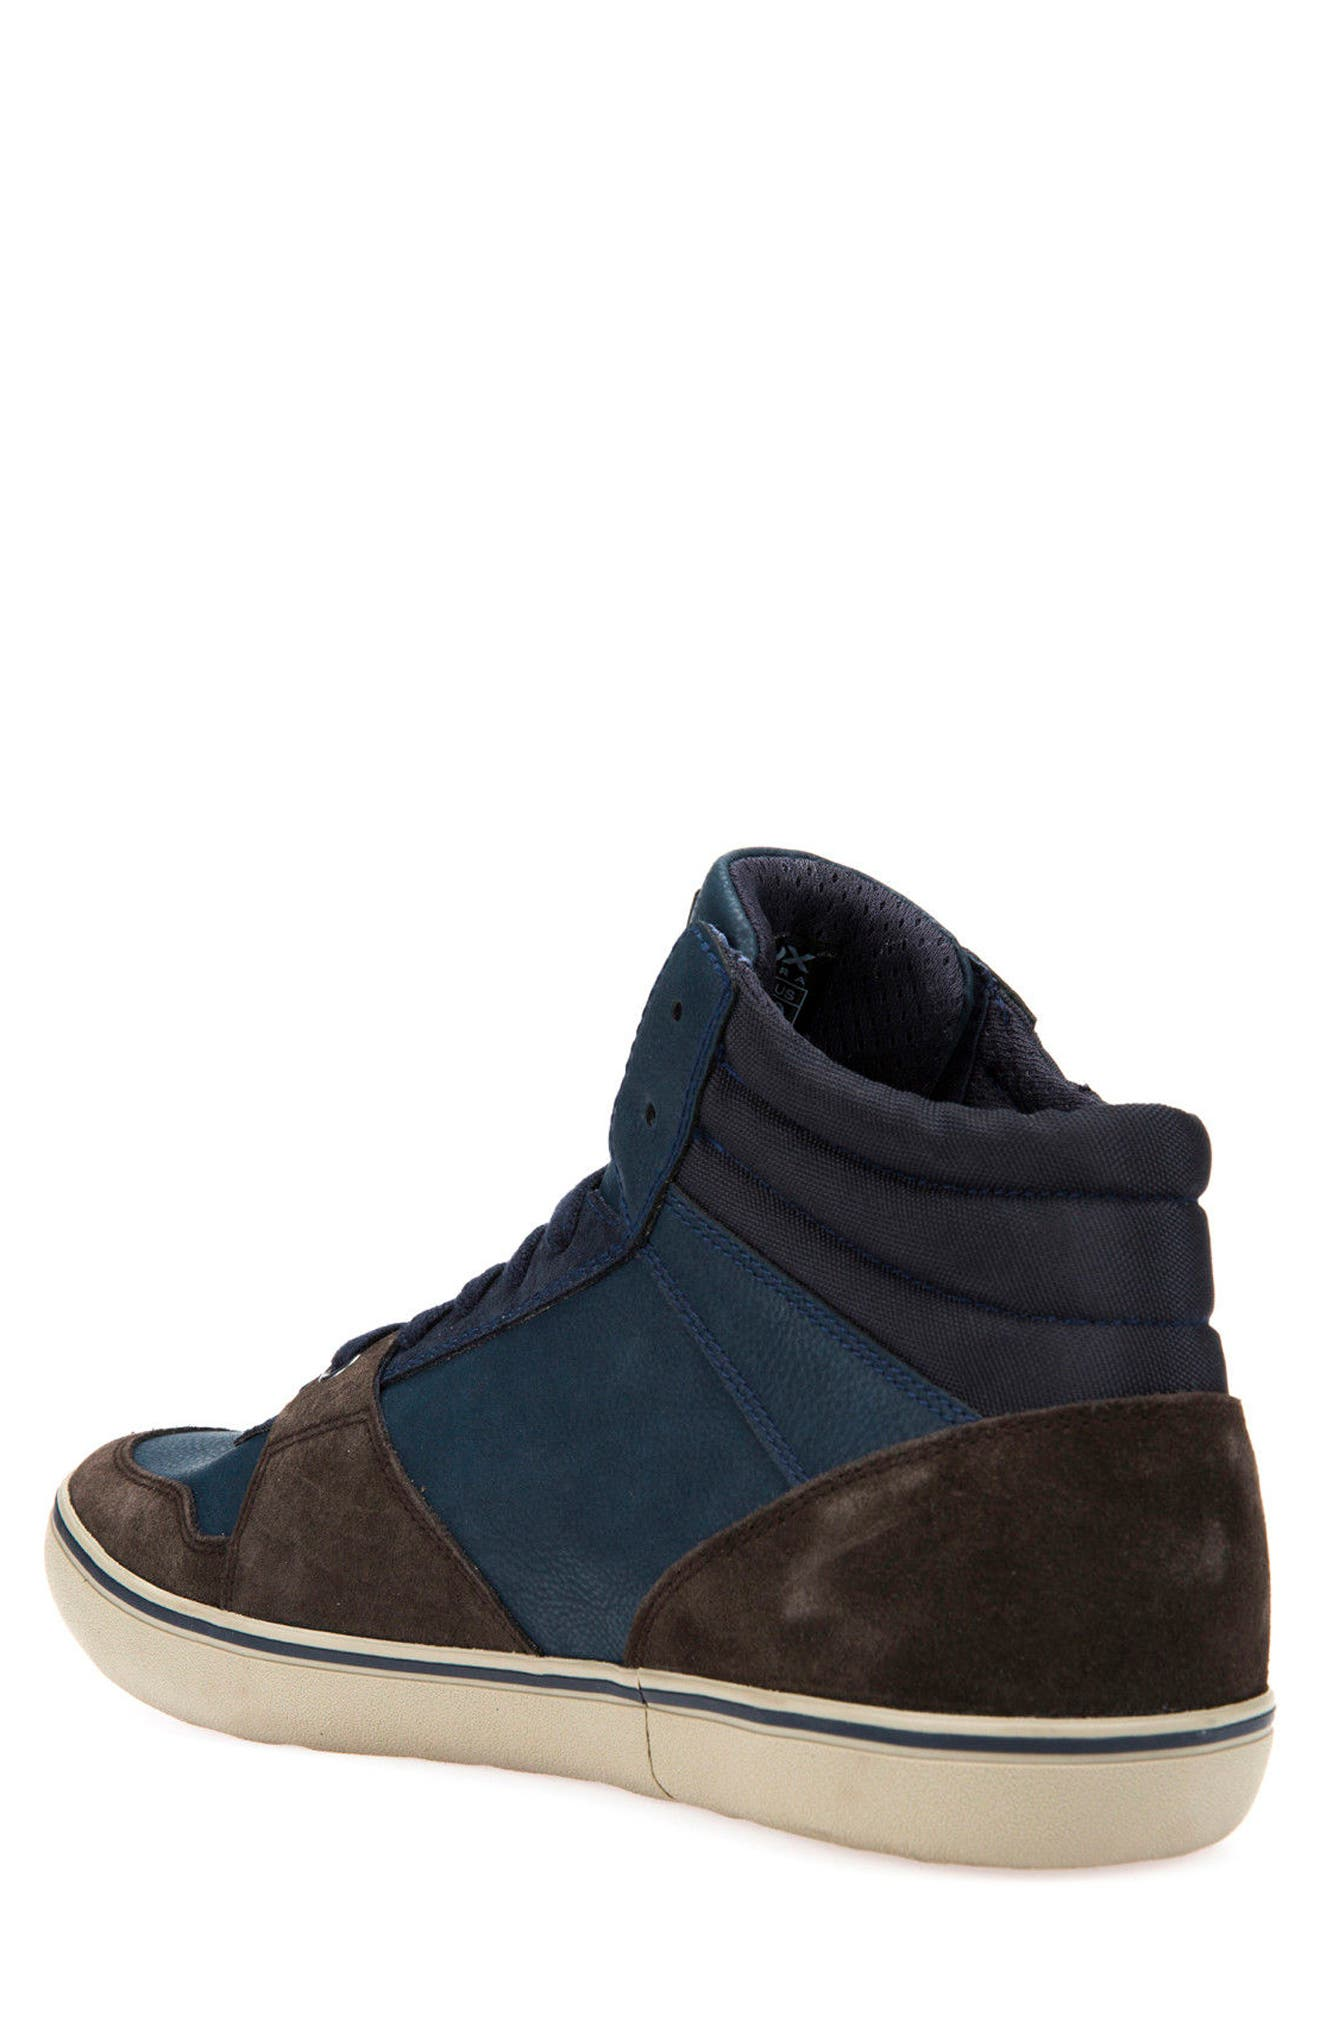 Box 29 High Top Sneaker,                             Alternate thumbnail 2, color,                             Dark Coffee/ Navy